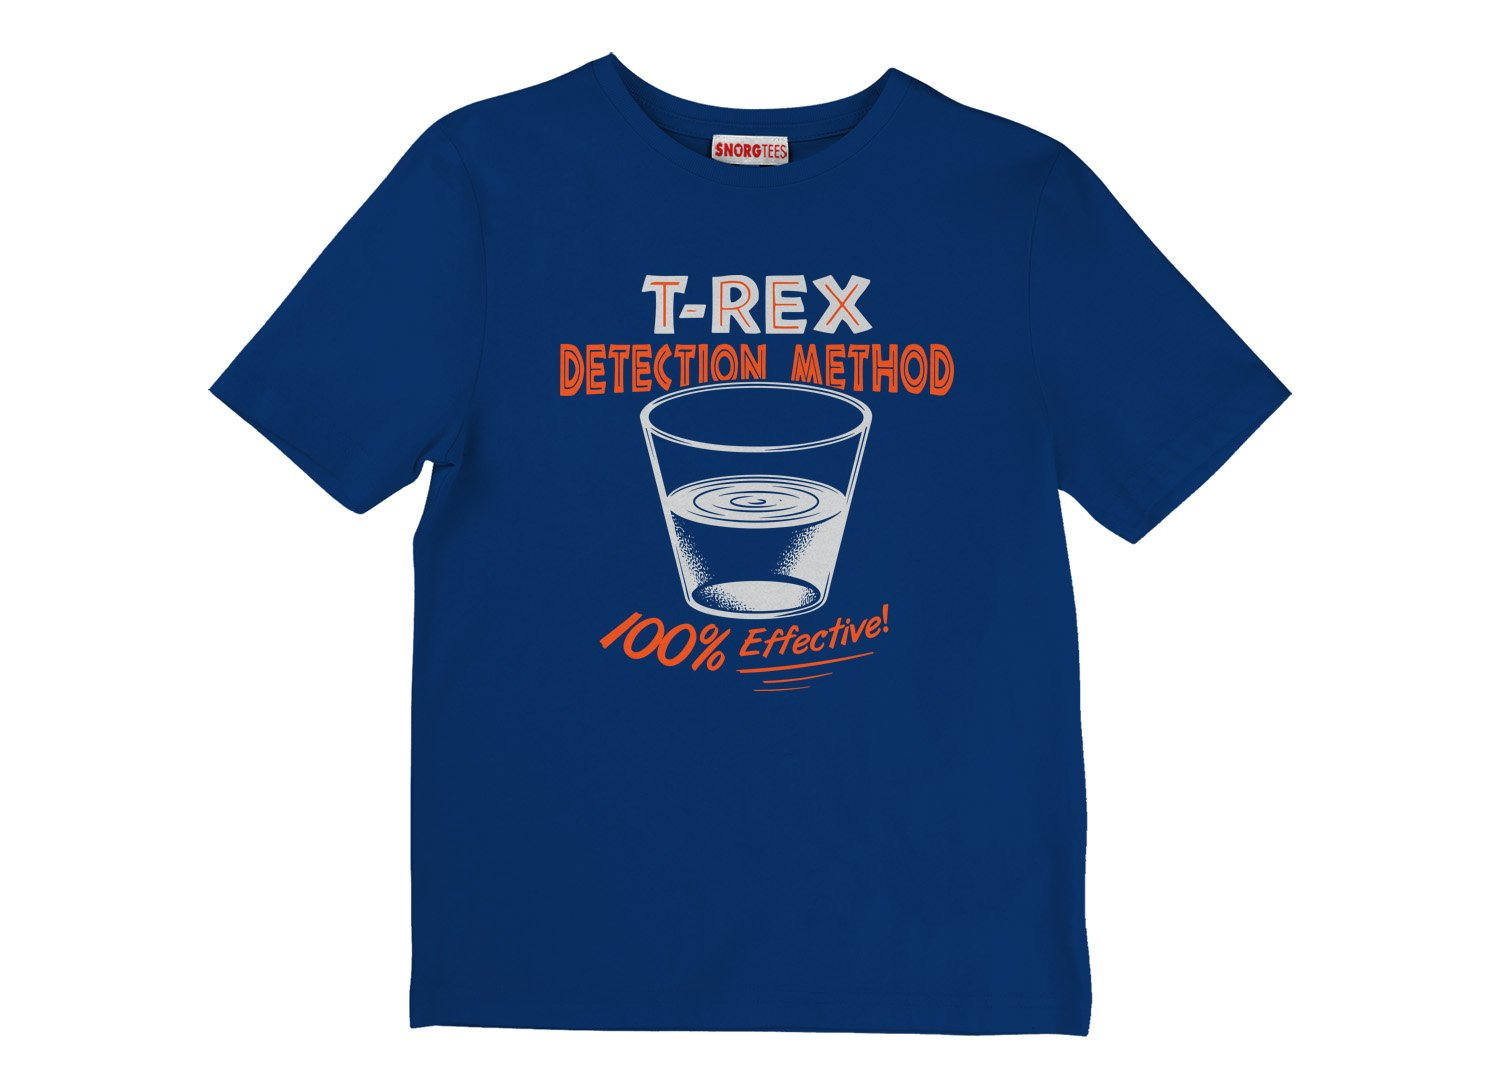 T-Rex Detection Method on Kids T-Shirt